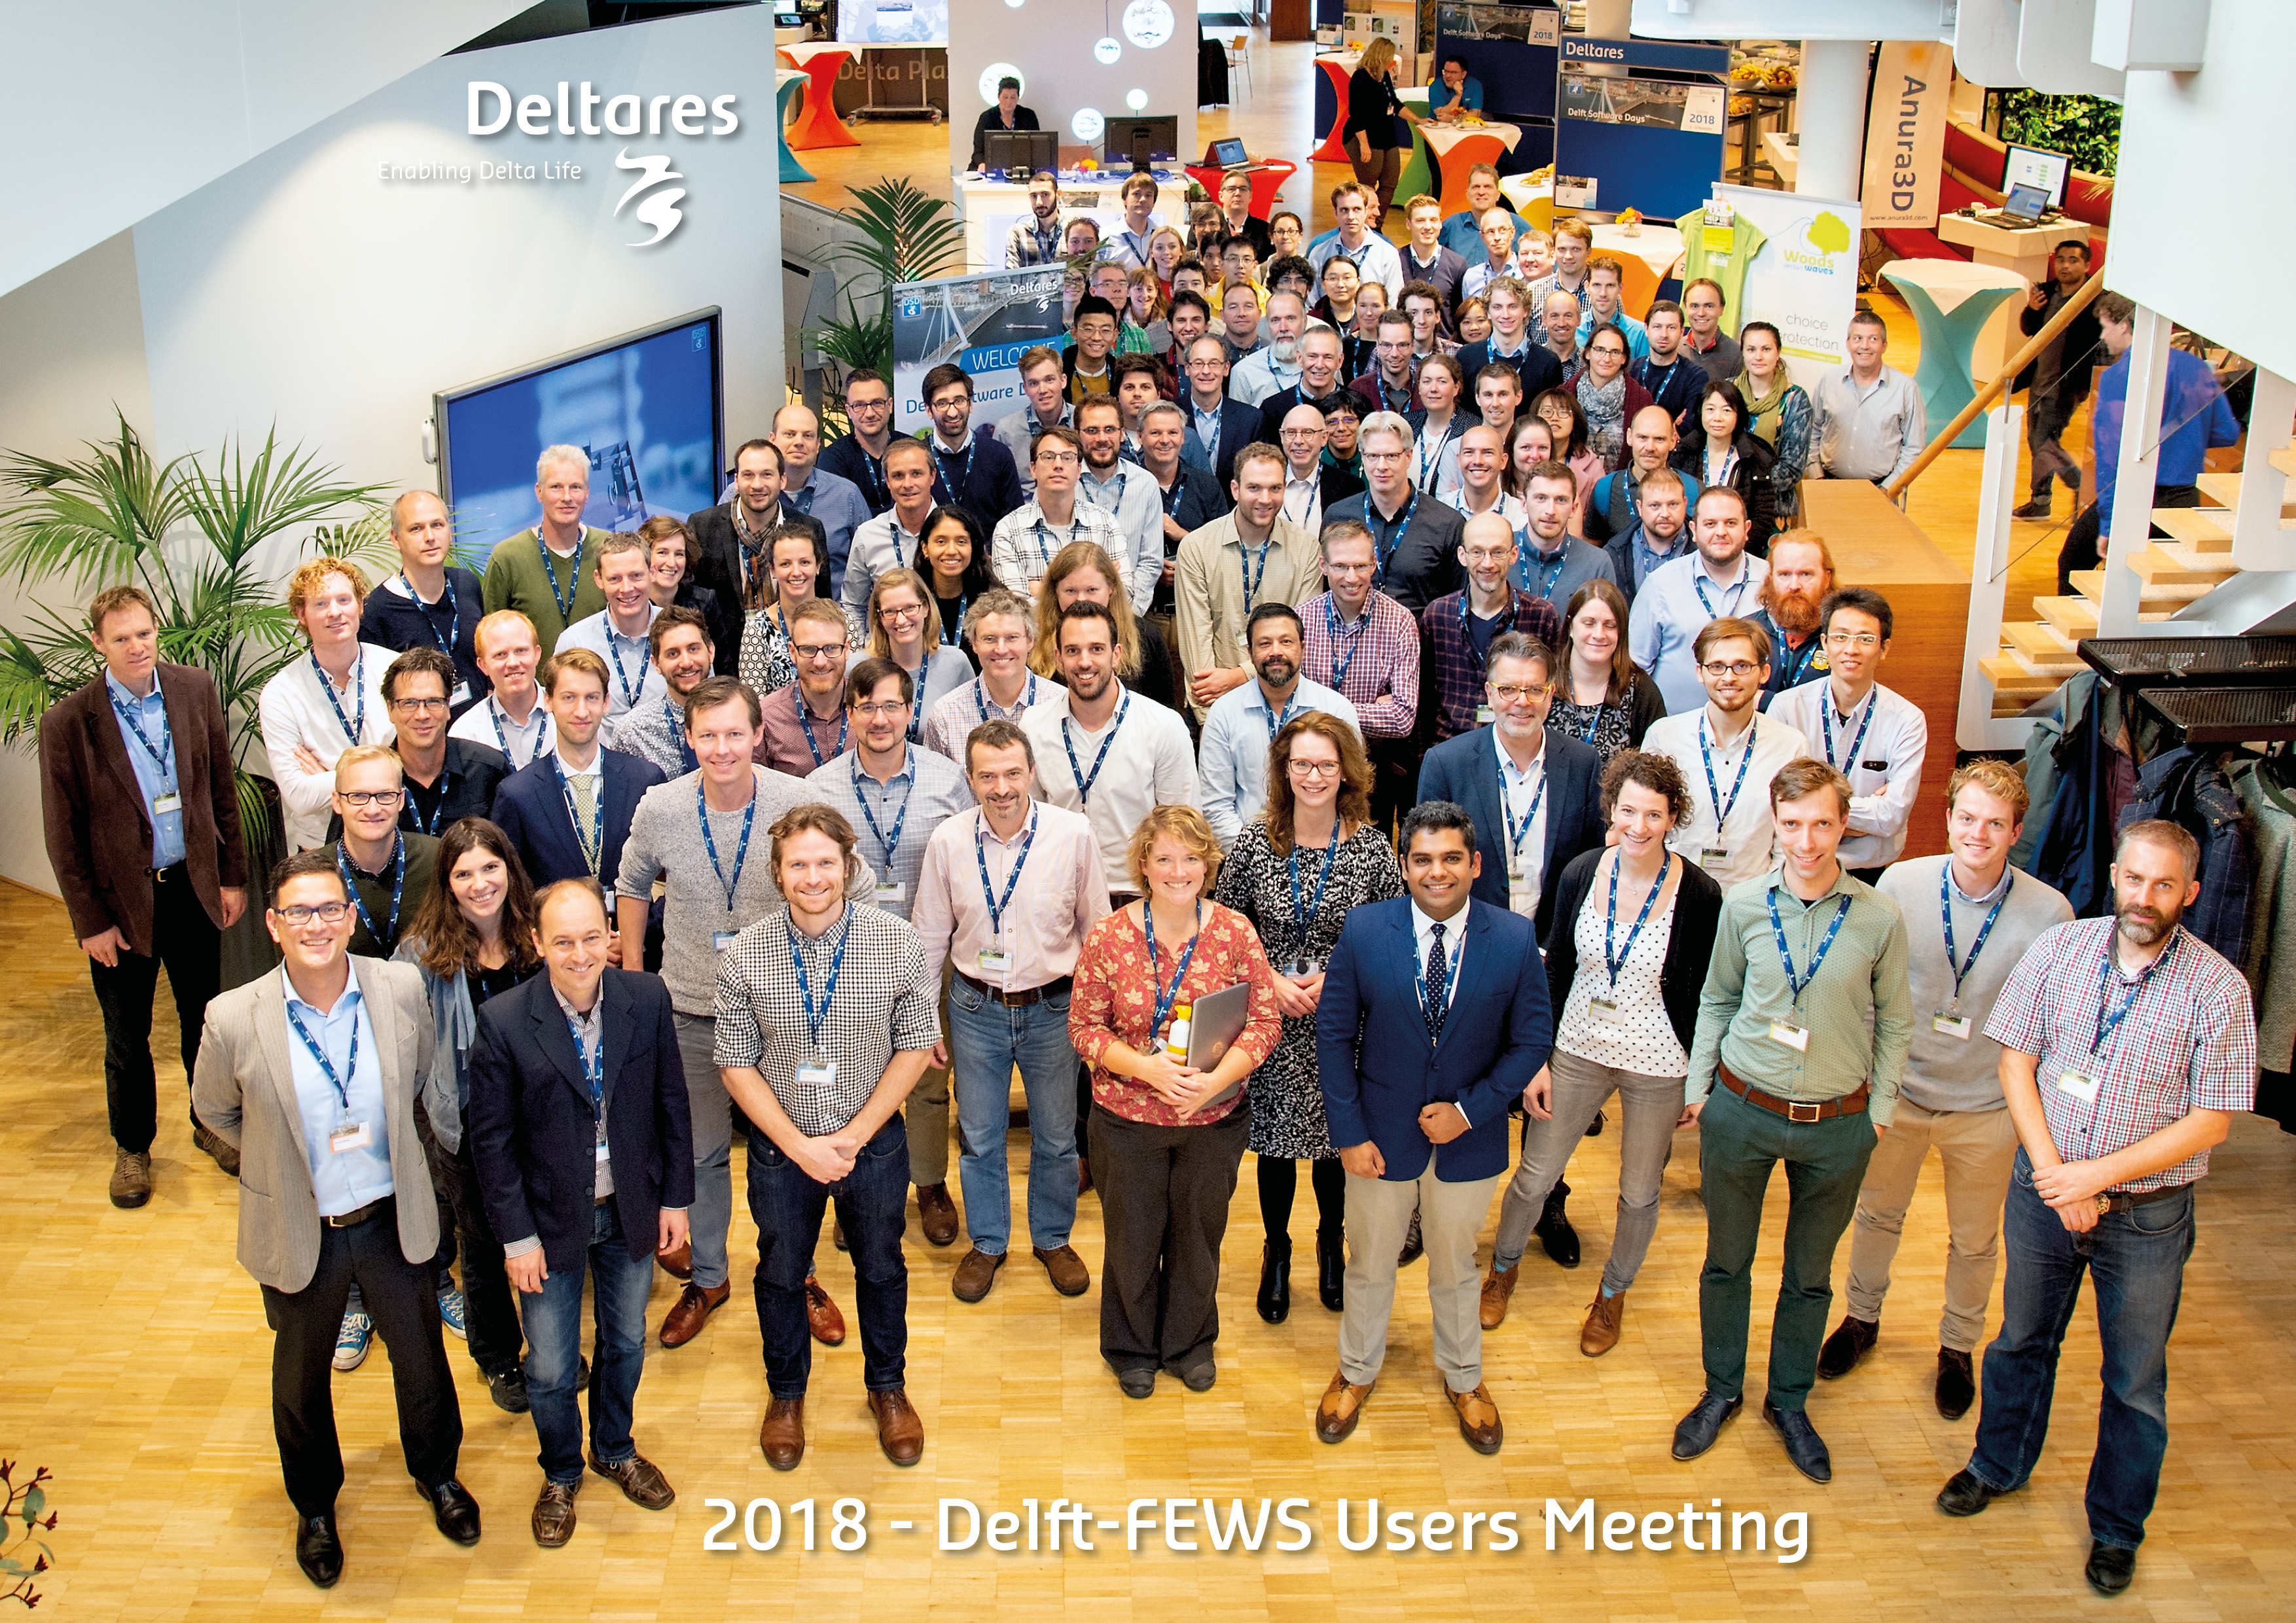 Delft-FEWS User Days 2018 - A great opportunity to keep in touch with people and learn about all the latest developments in Delft-FEWS